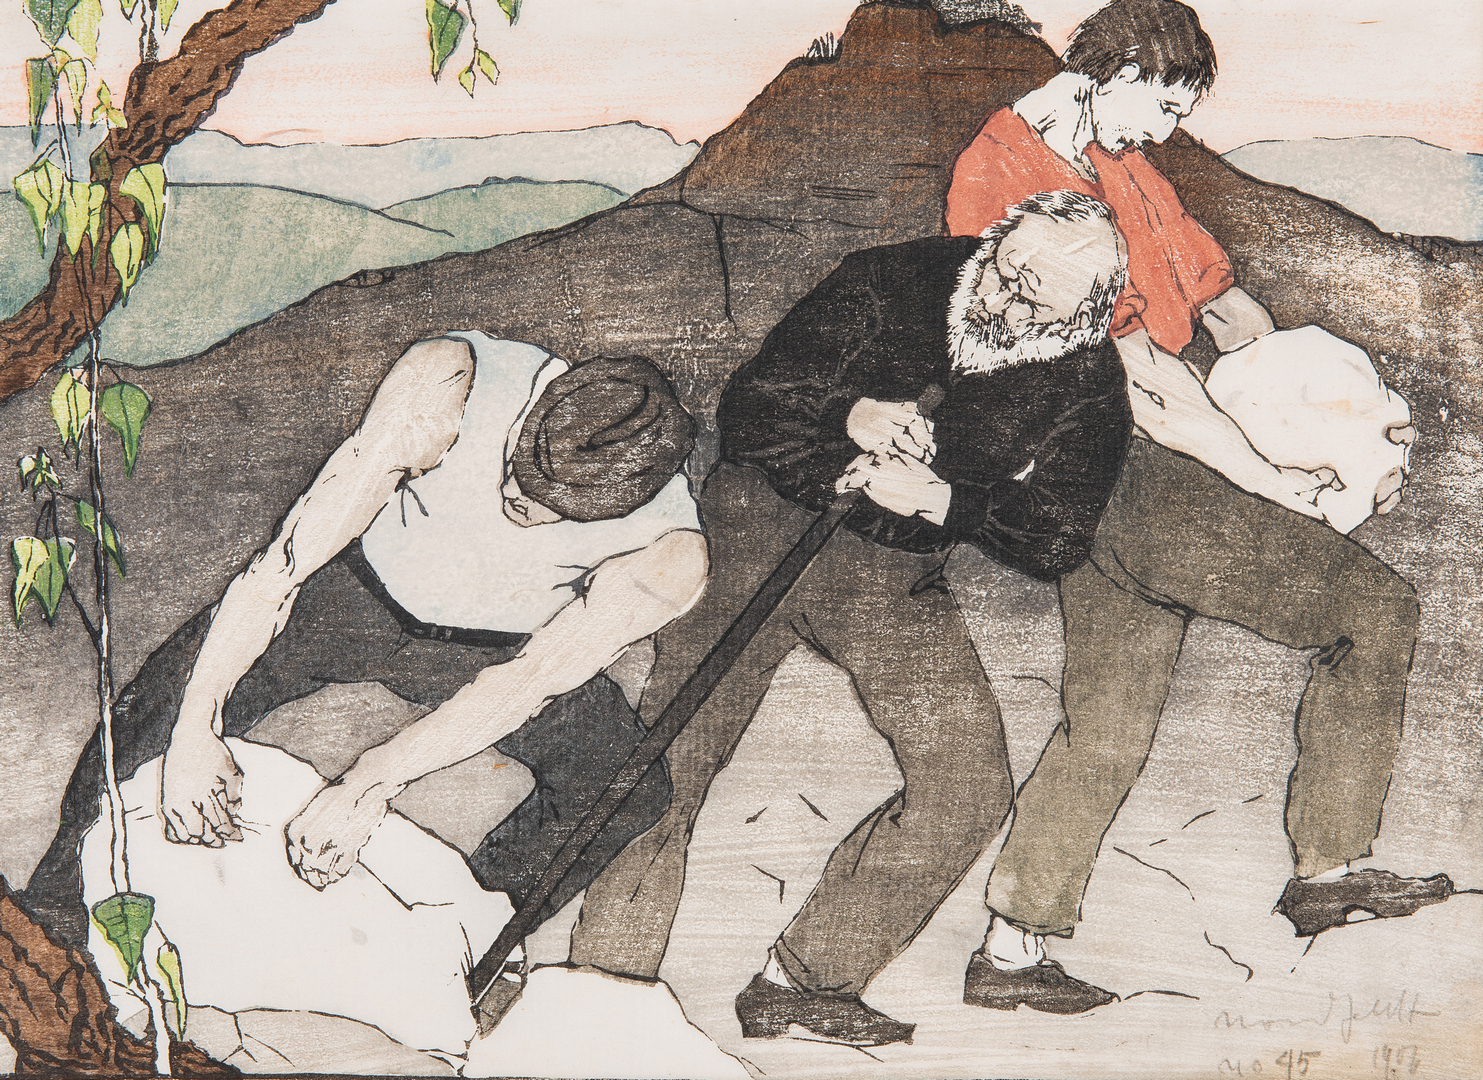 Lot 115: Bror Julius Olsson Nordfeldt Woodcut, The Quarry